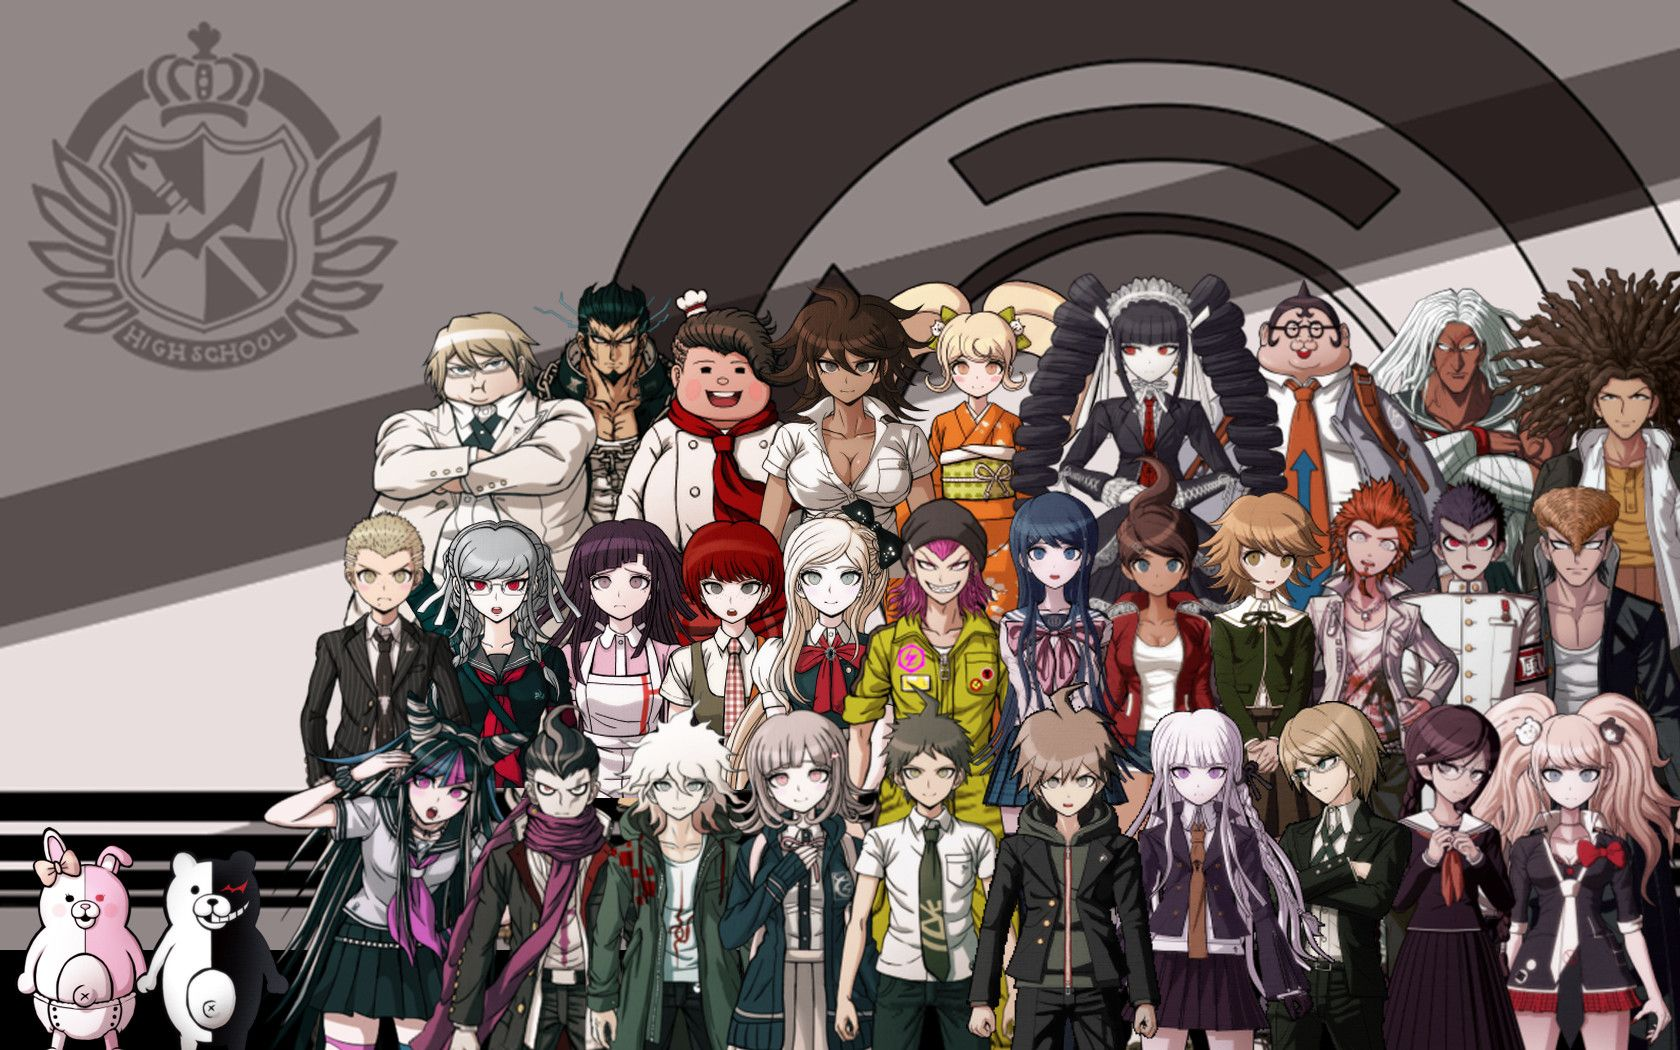 Dangan Ronpa Wallpapers - Top Free Dangan Ronpa Backgrounds